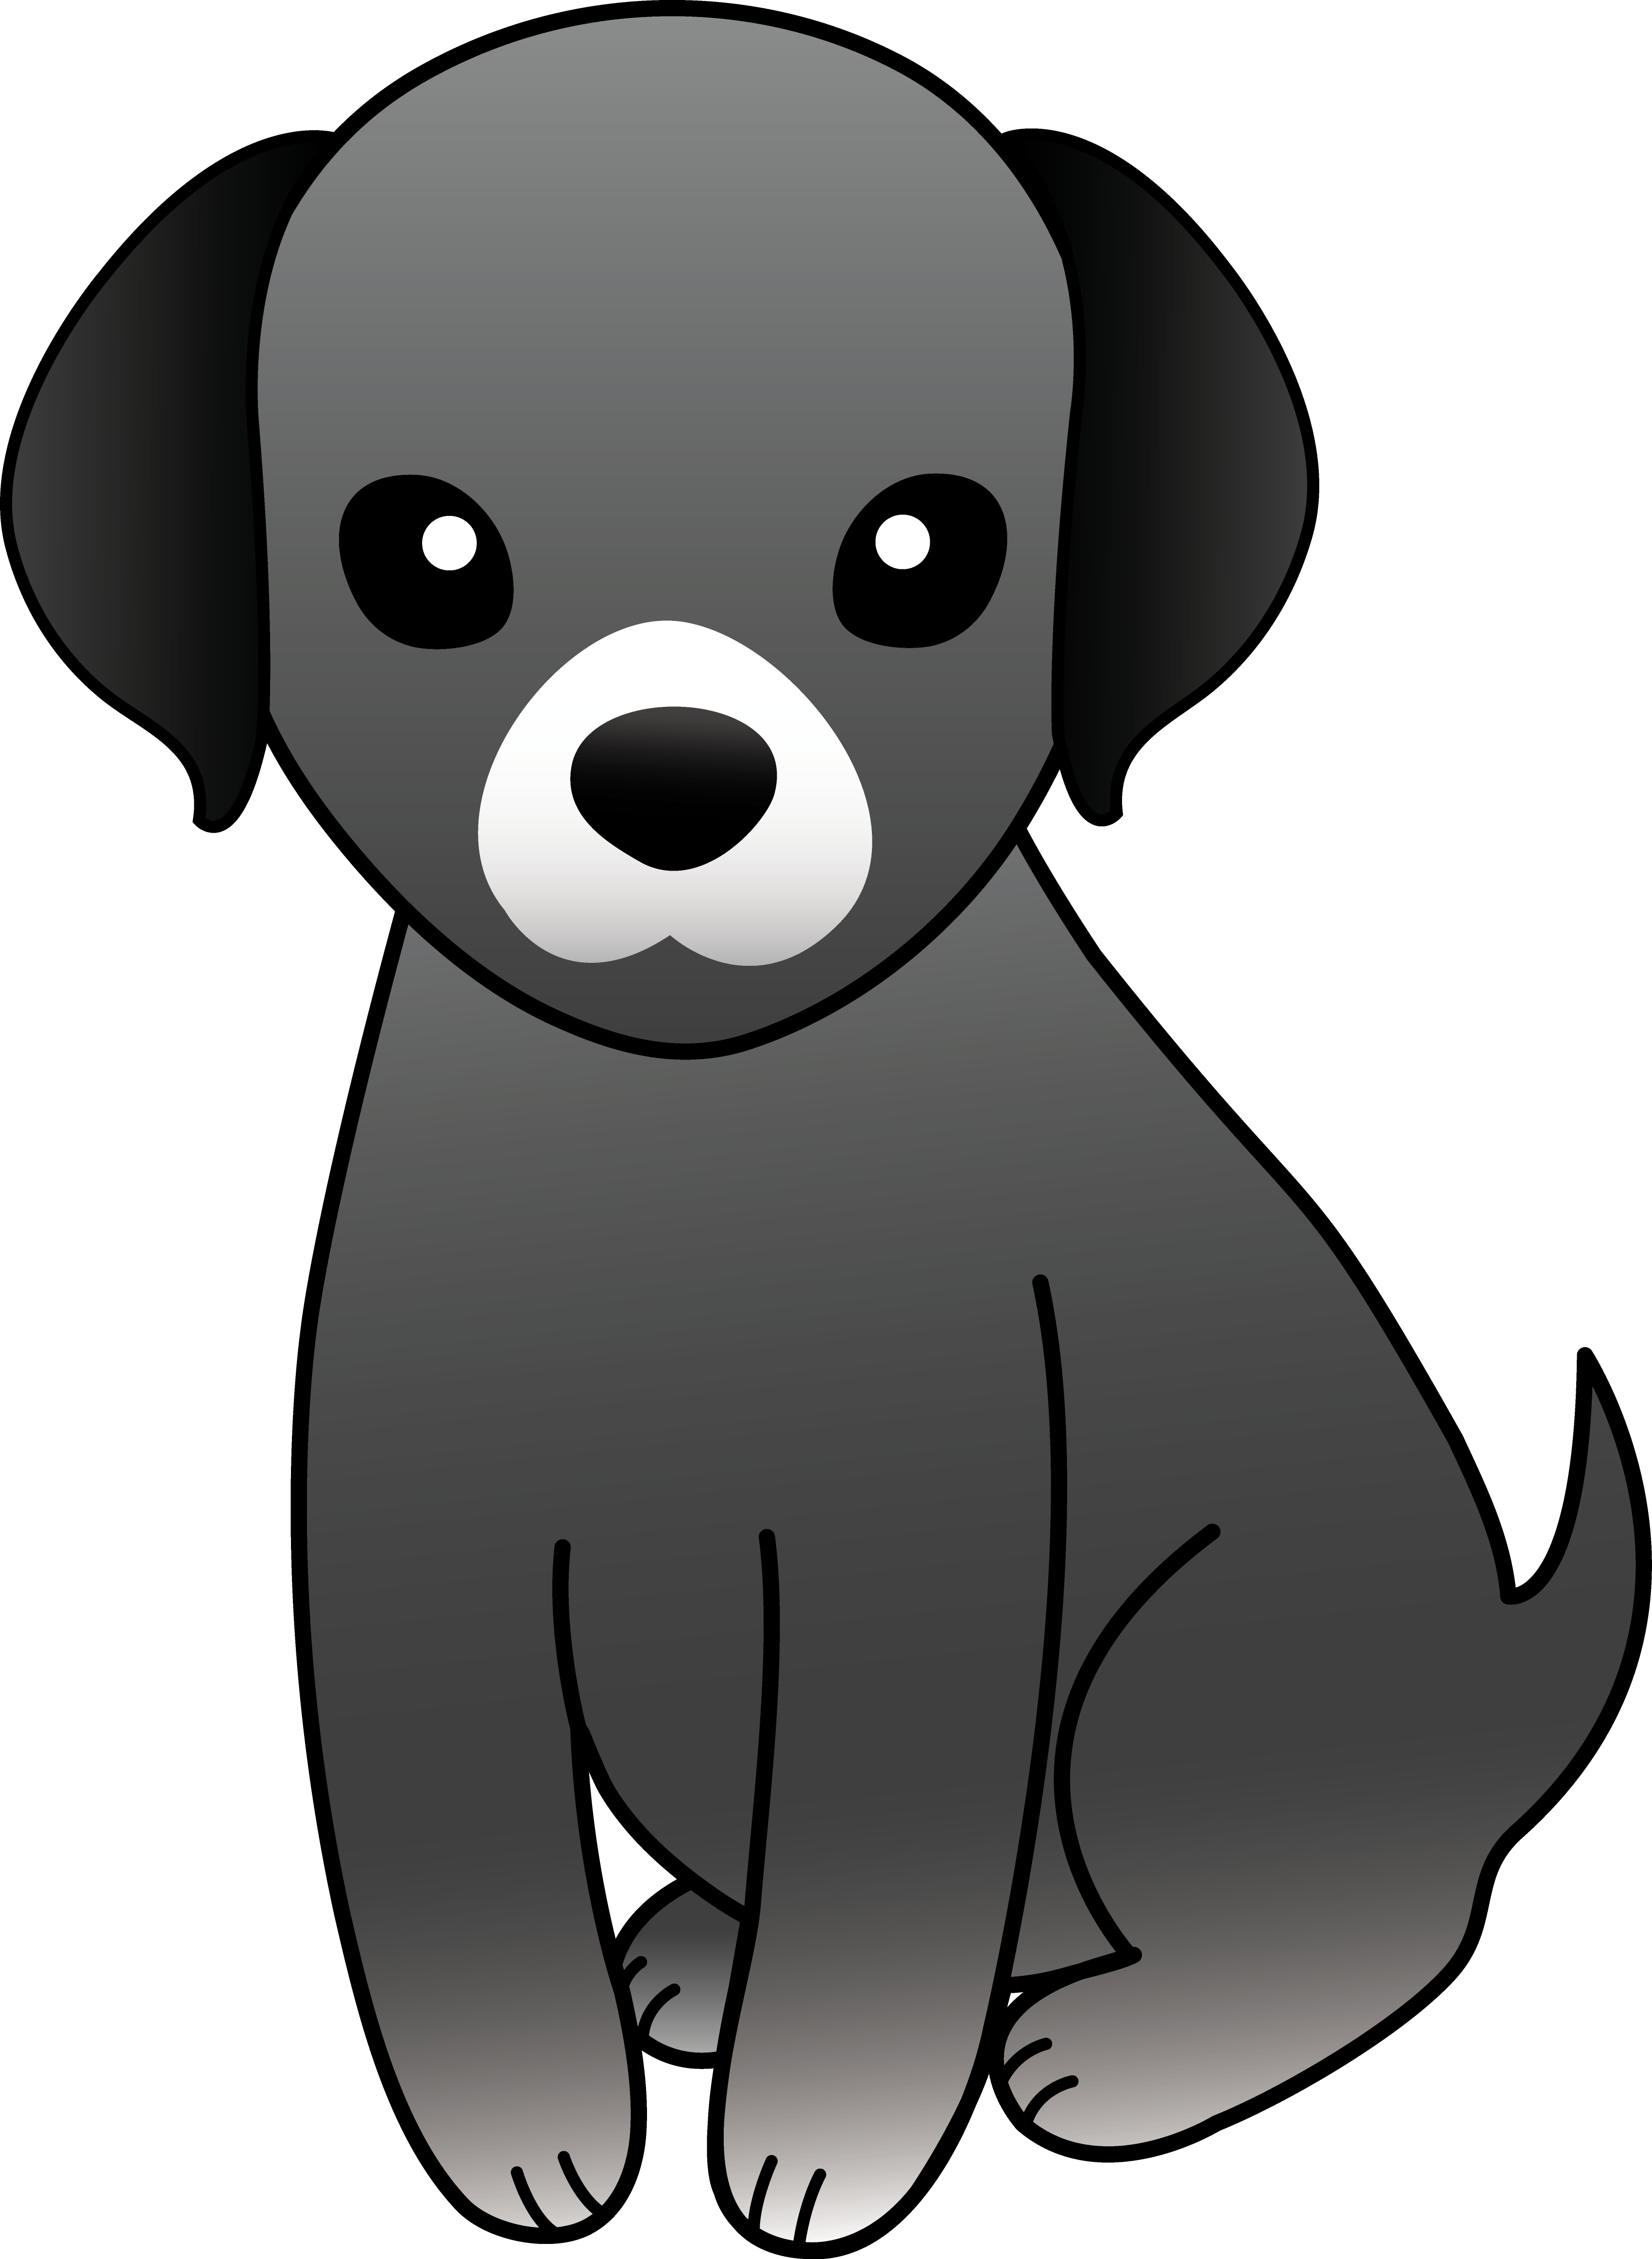 Puppy clipart homely design. Doggy drawing artistic clipart transparent library